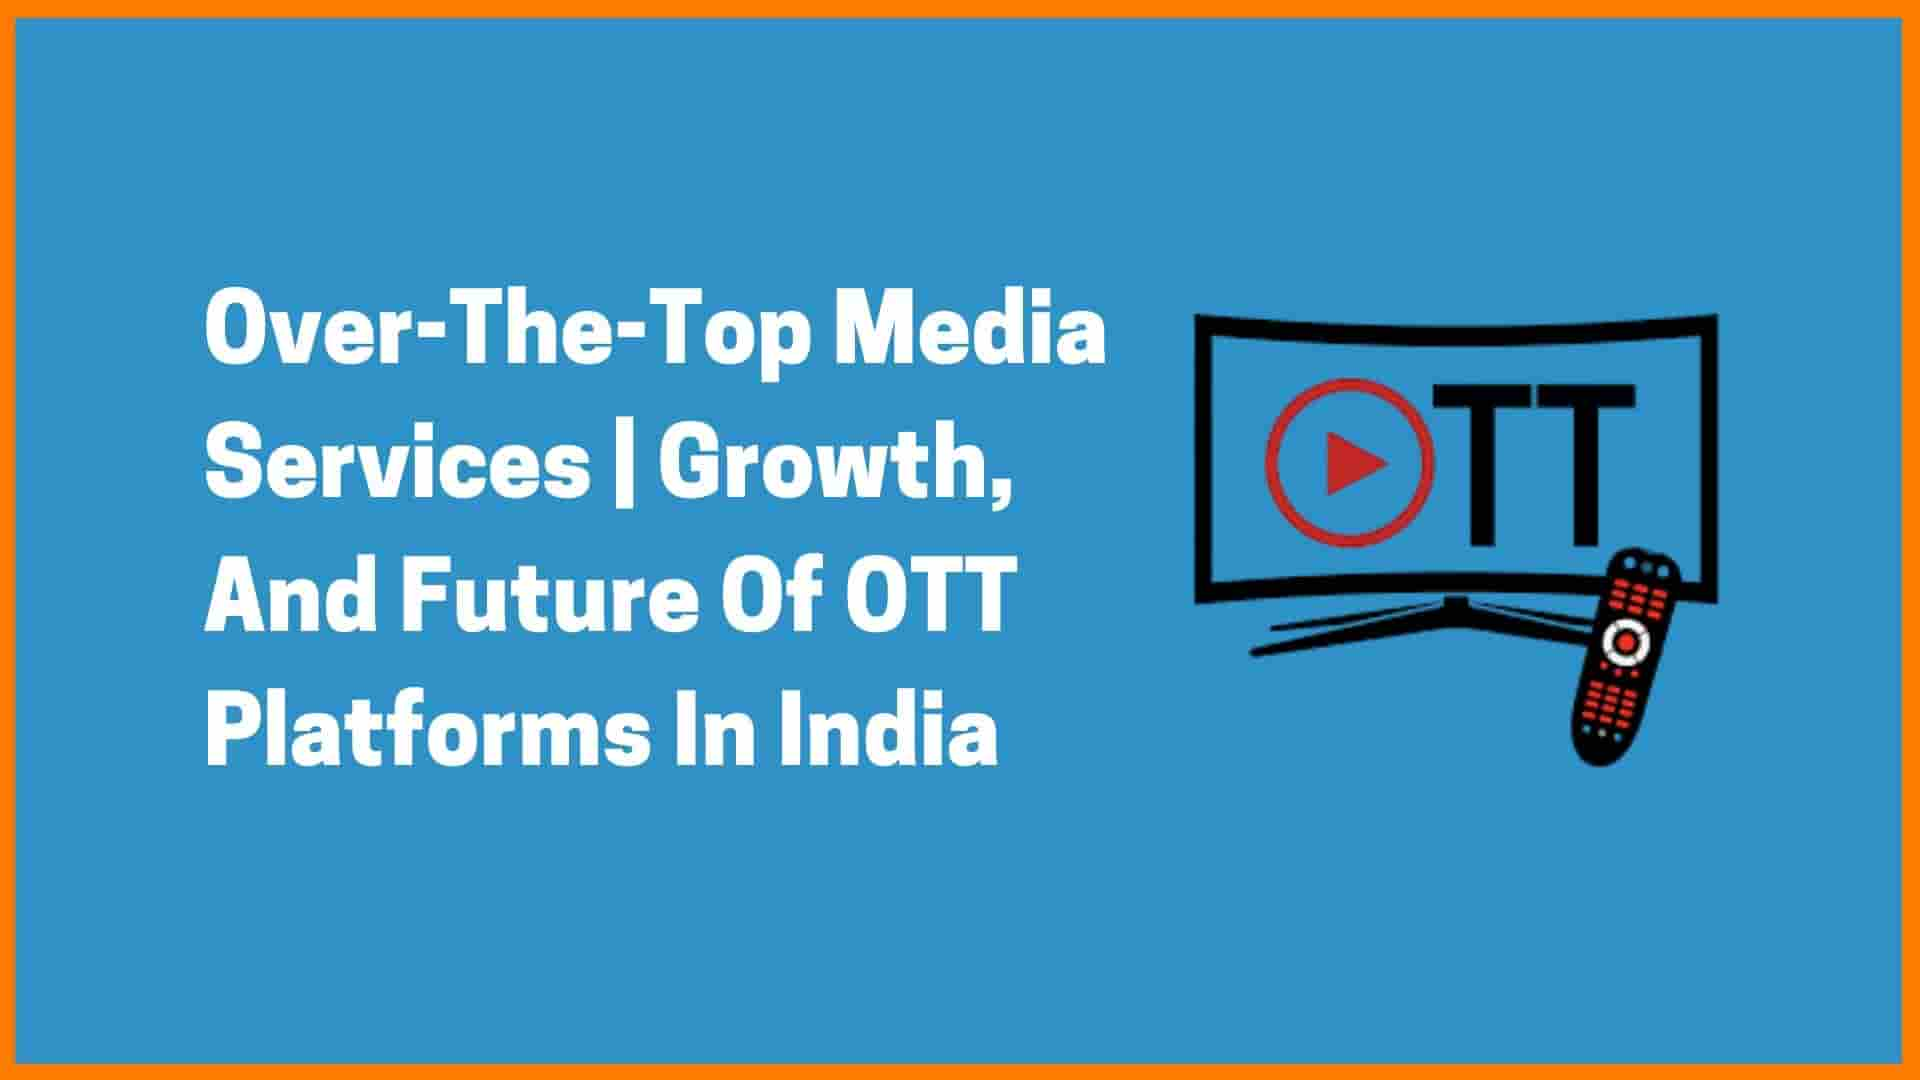 Over-The-Top (OTT) Media Services | Growth And Future Of OTT Platforms In India